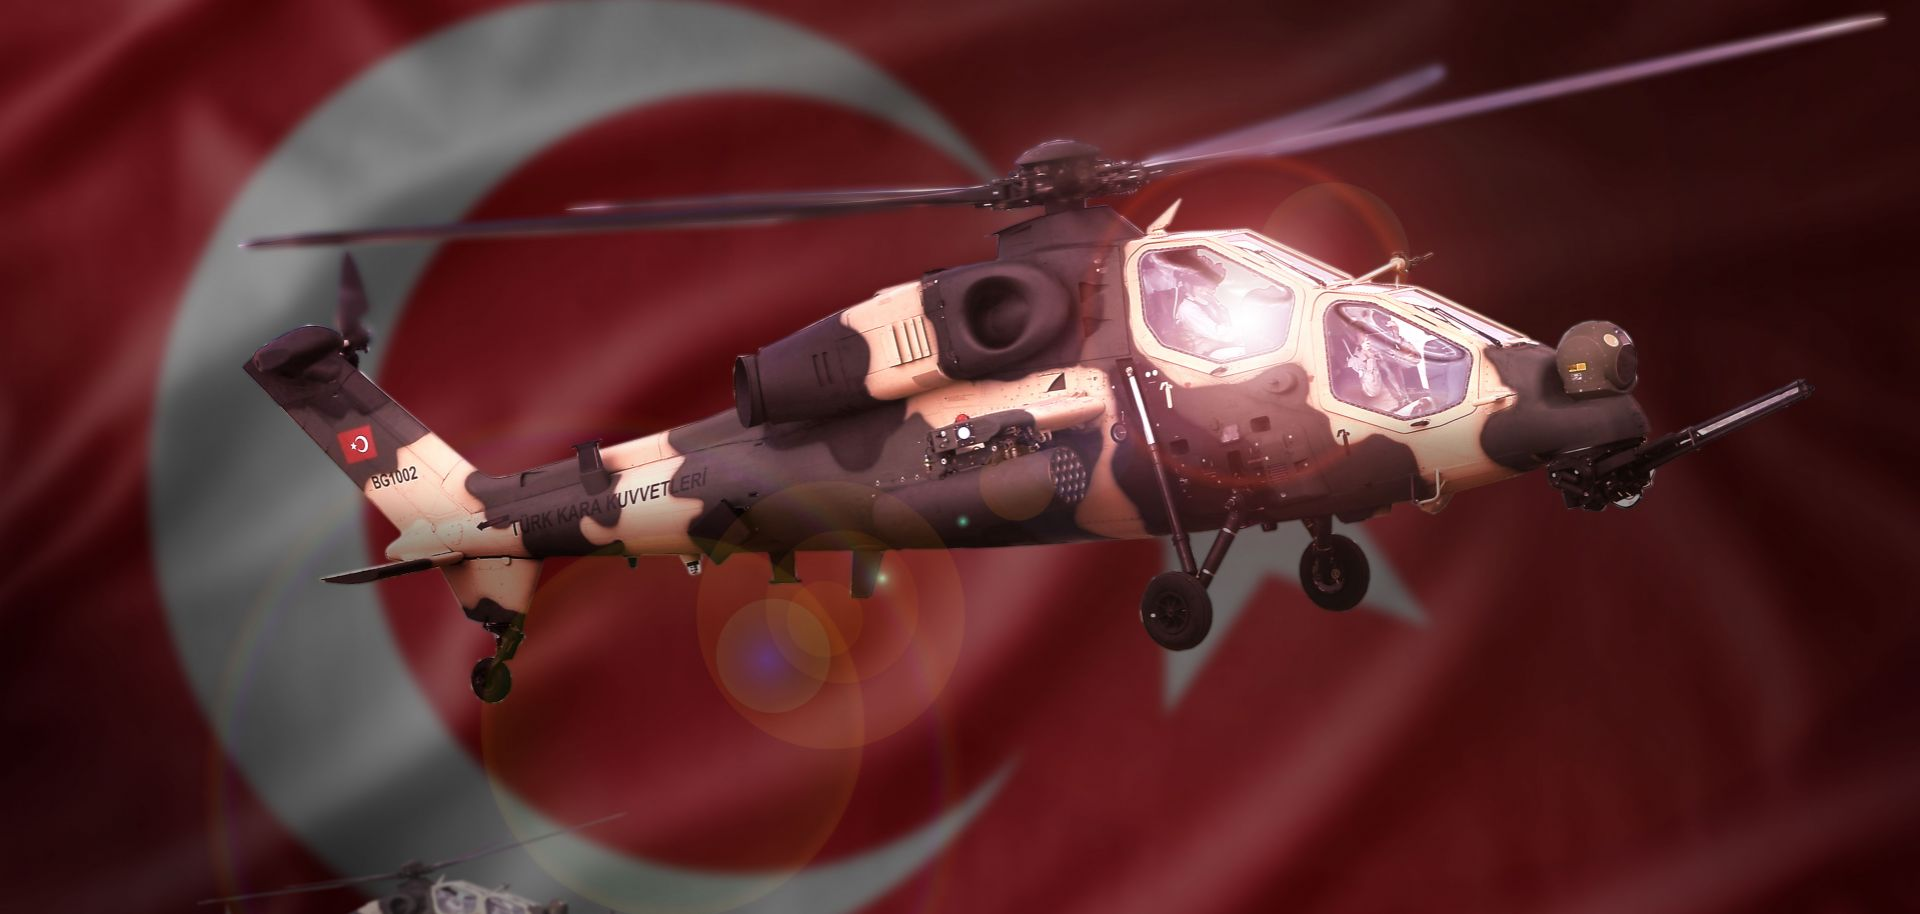 A picture of a T129 attack helicopter produced by Turkish Aerospace Industries in partnership with Anglo-Italian company AgustaWestland.